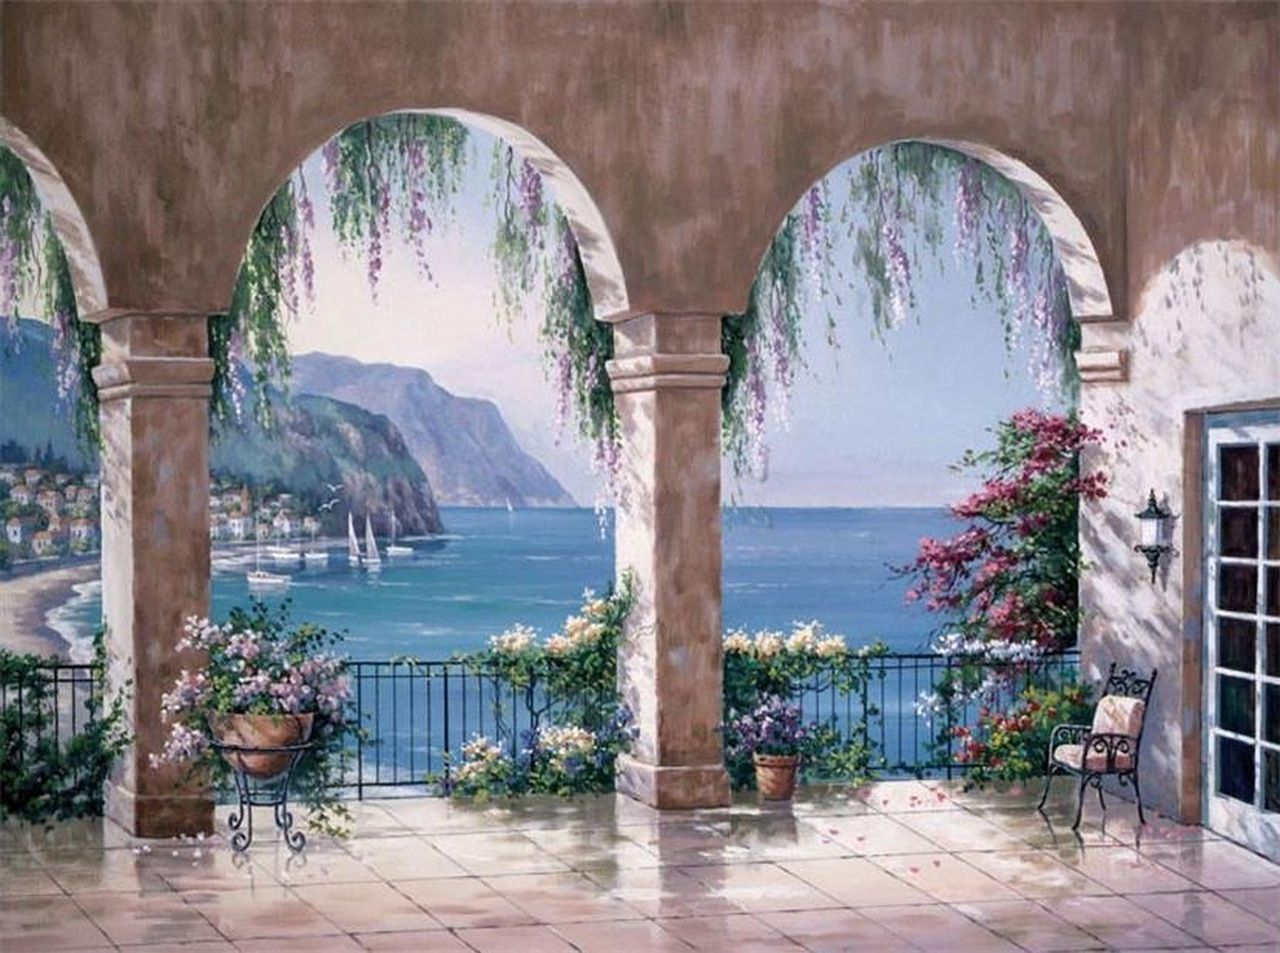 sung kim mediterranean arch 1280 953 inspirations for walls walls